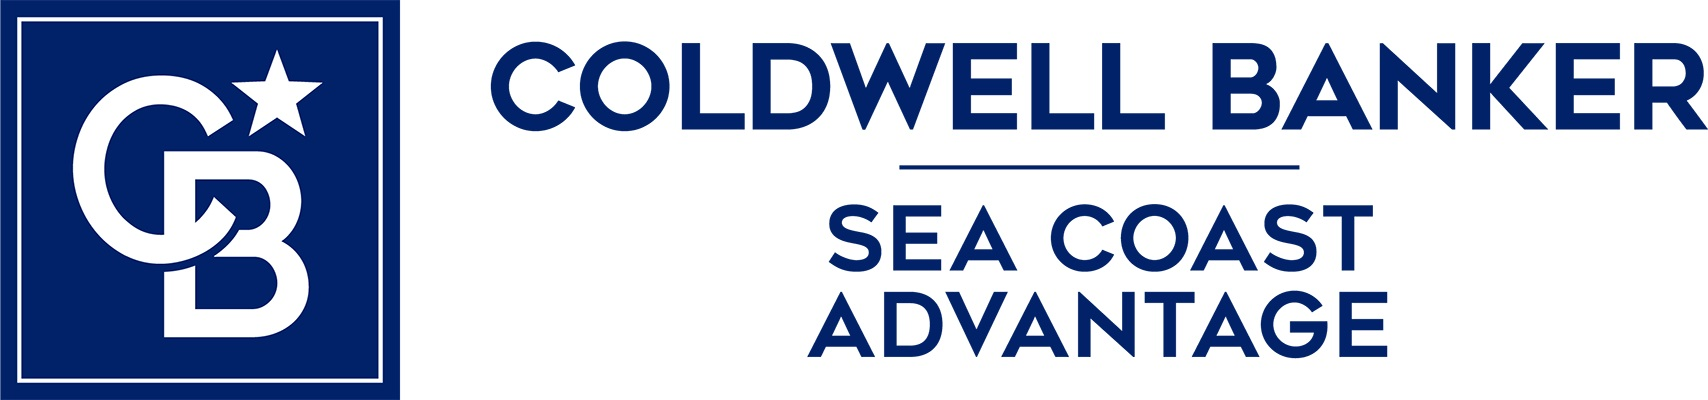 Gail Lendvoyi - Coldwell Banker Sea Coast Advantage Realty